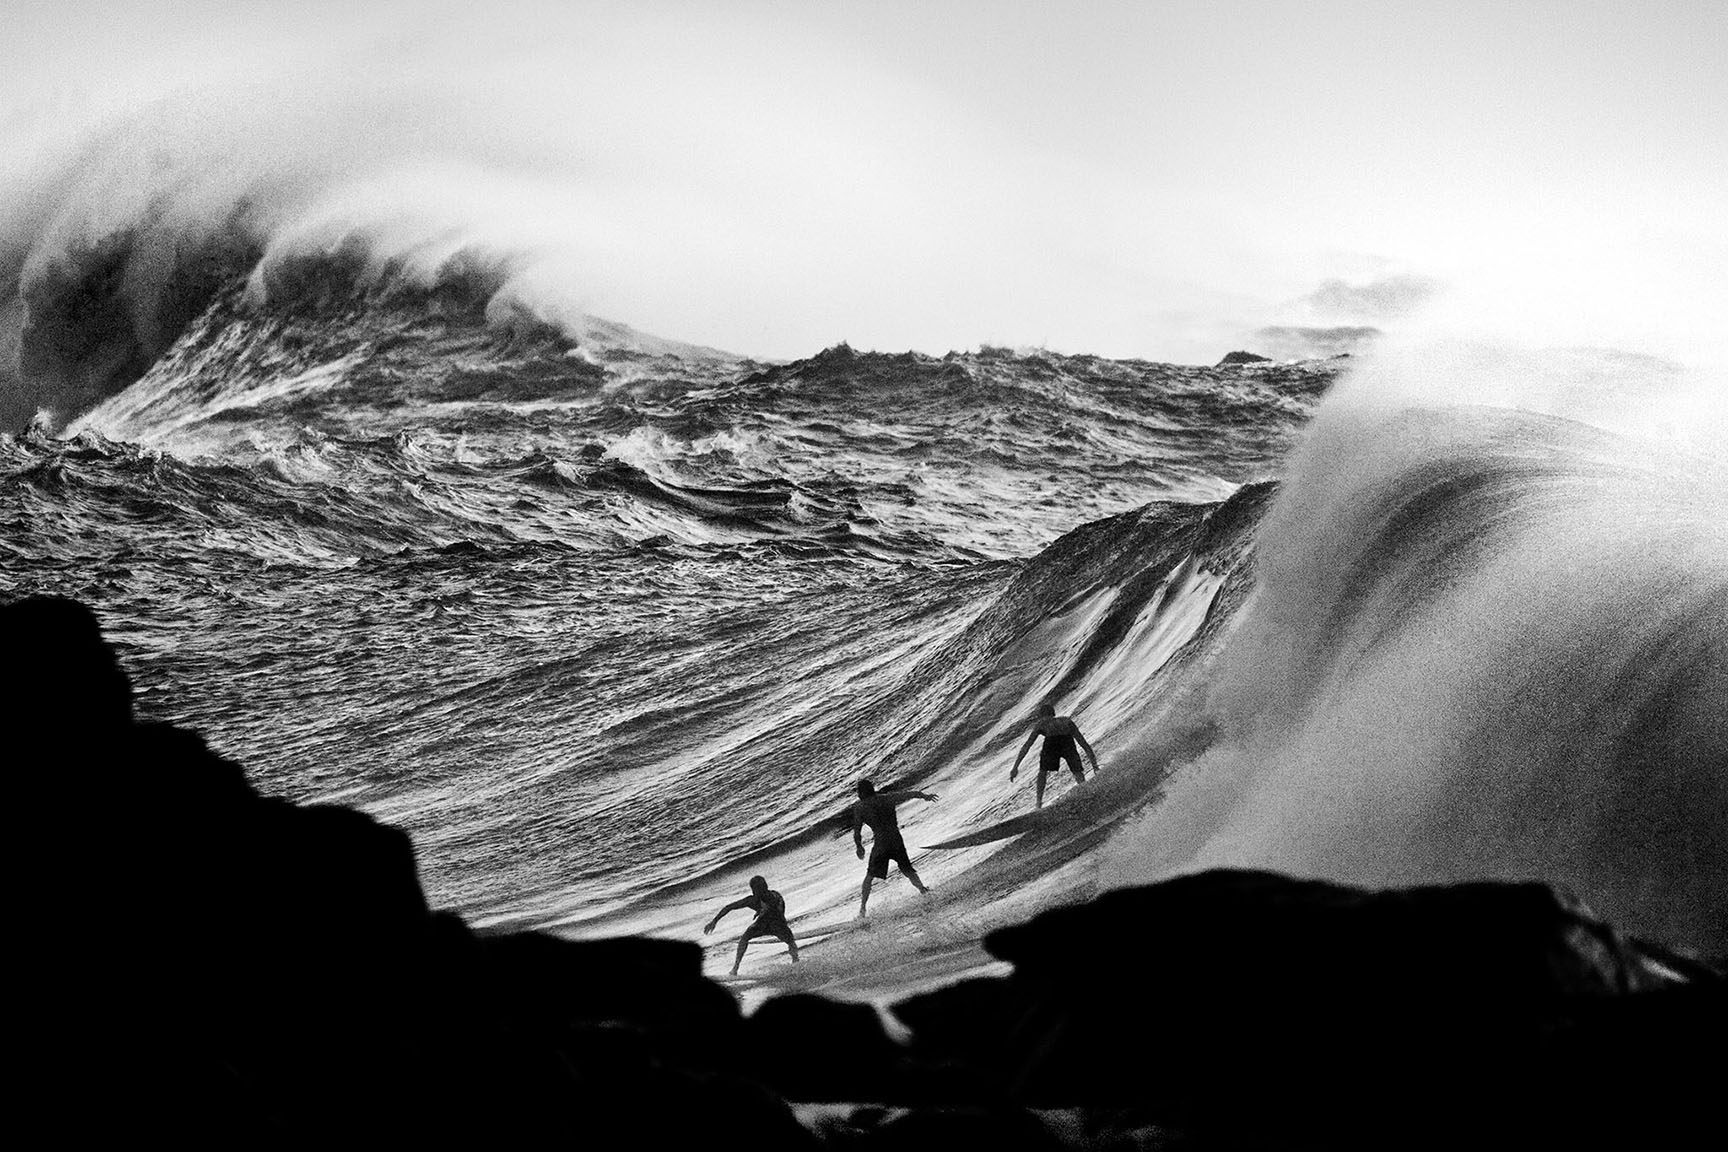 Best black and white photography in action sports x games